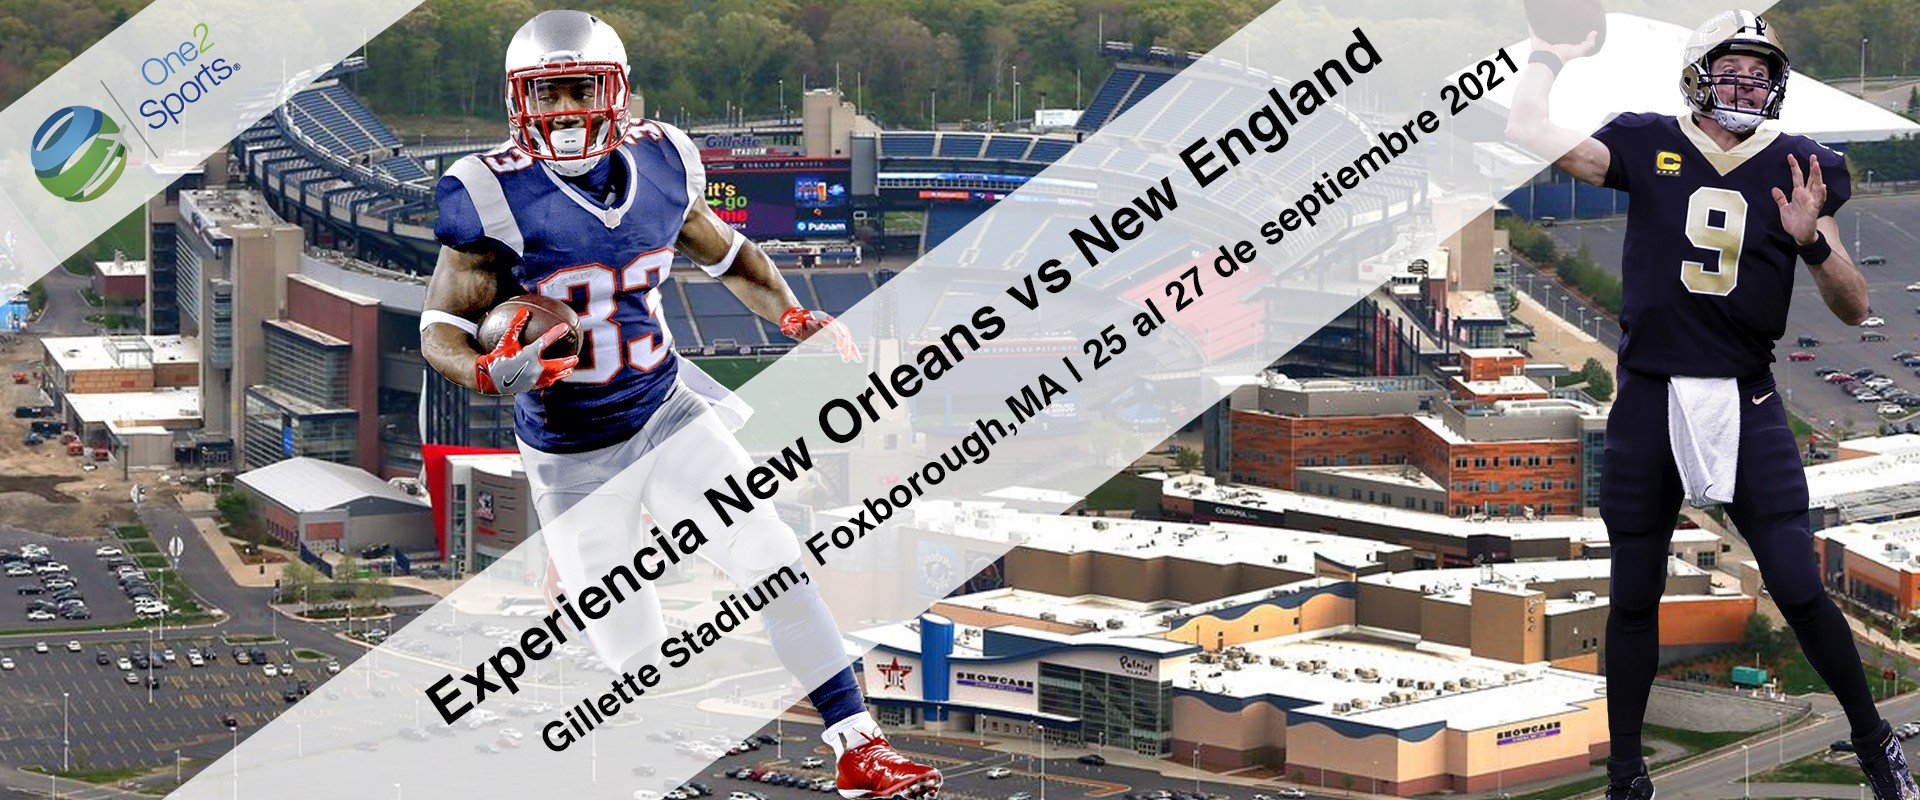 New England vs New Orleans